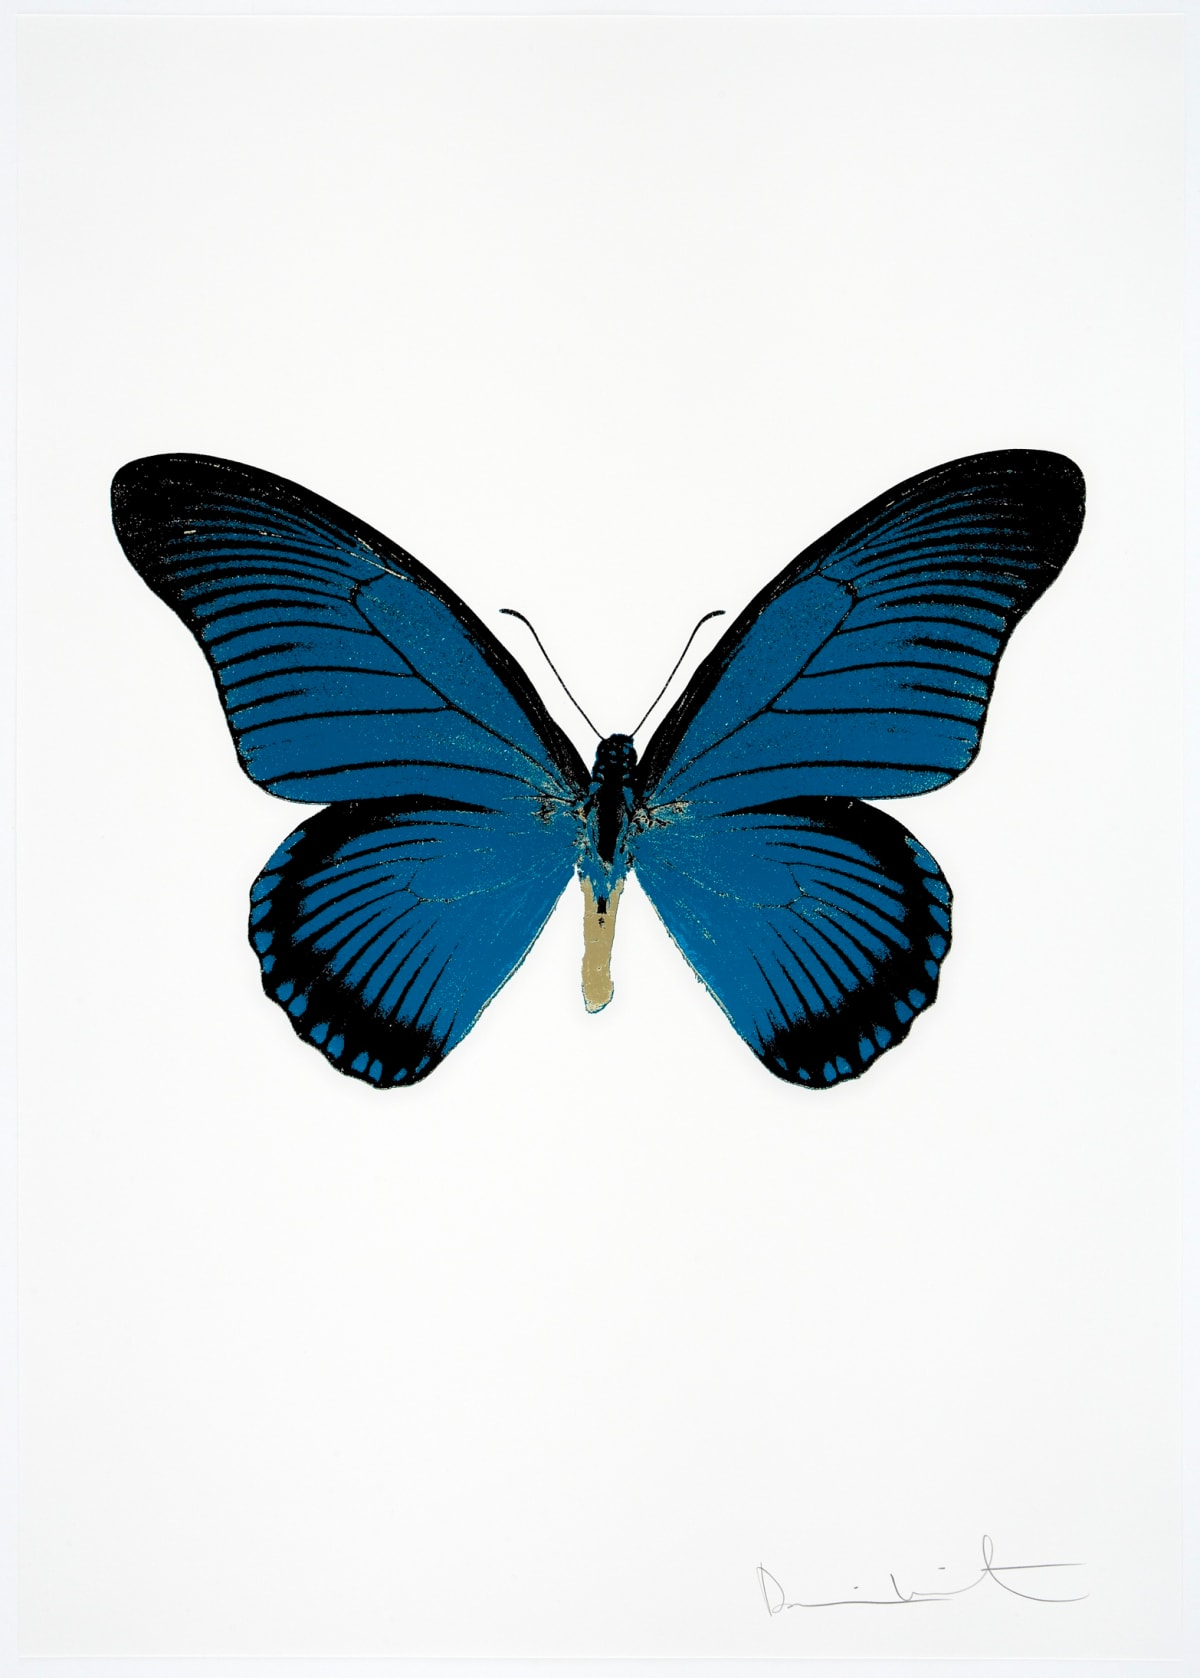 Damien Hirst The Souls IV Turquoise/Raven Black/Cool Gold Damien Hirst butterfly foil print for sale Damien Hirst print for sale , 2010 3 colour foil block on 300gsm Arches 88 archival paper. Signed and numbered. Published by Paul Stolper and Other Criteria 72 x 51cm OC8054 / 1418-77 Edition of 15